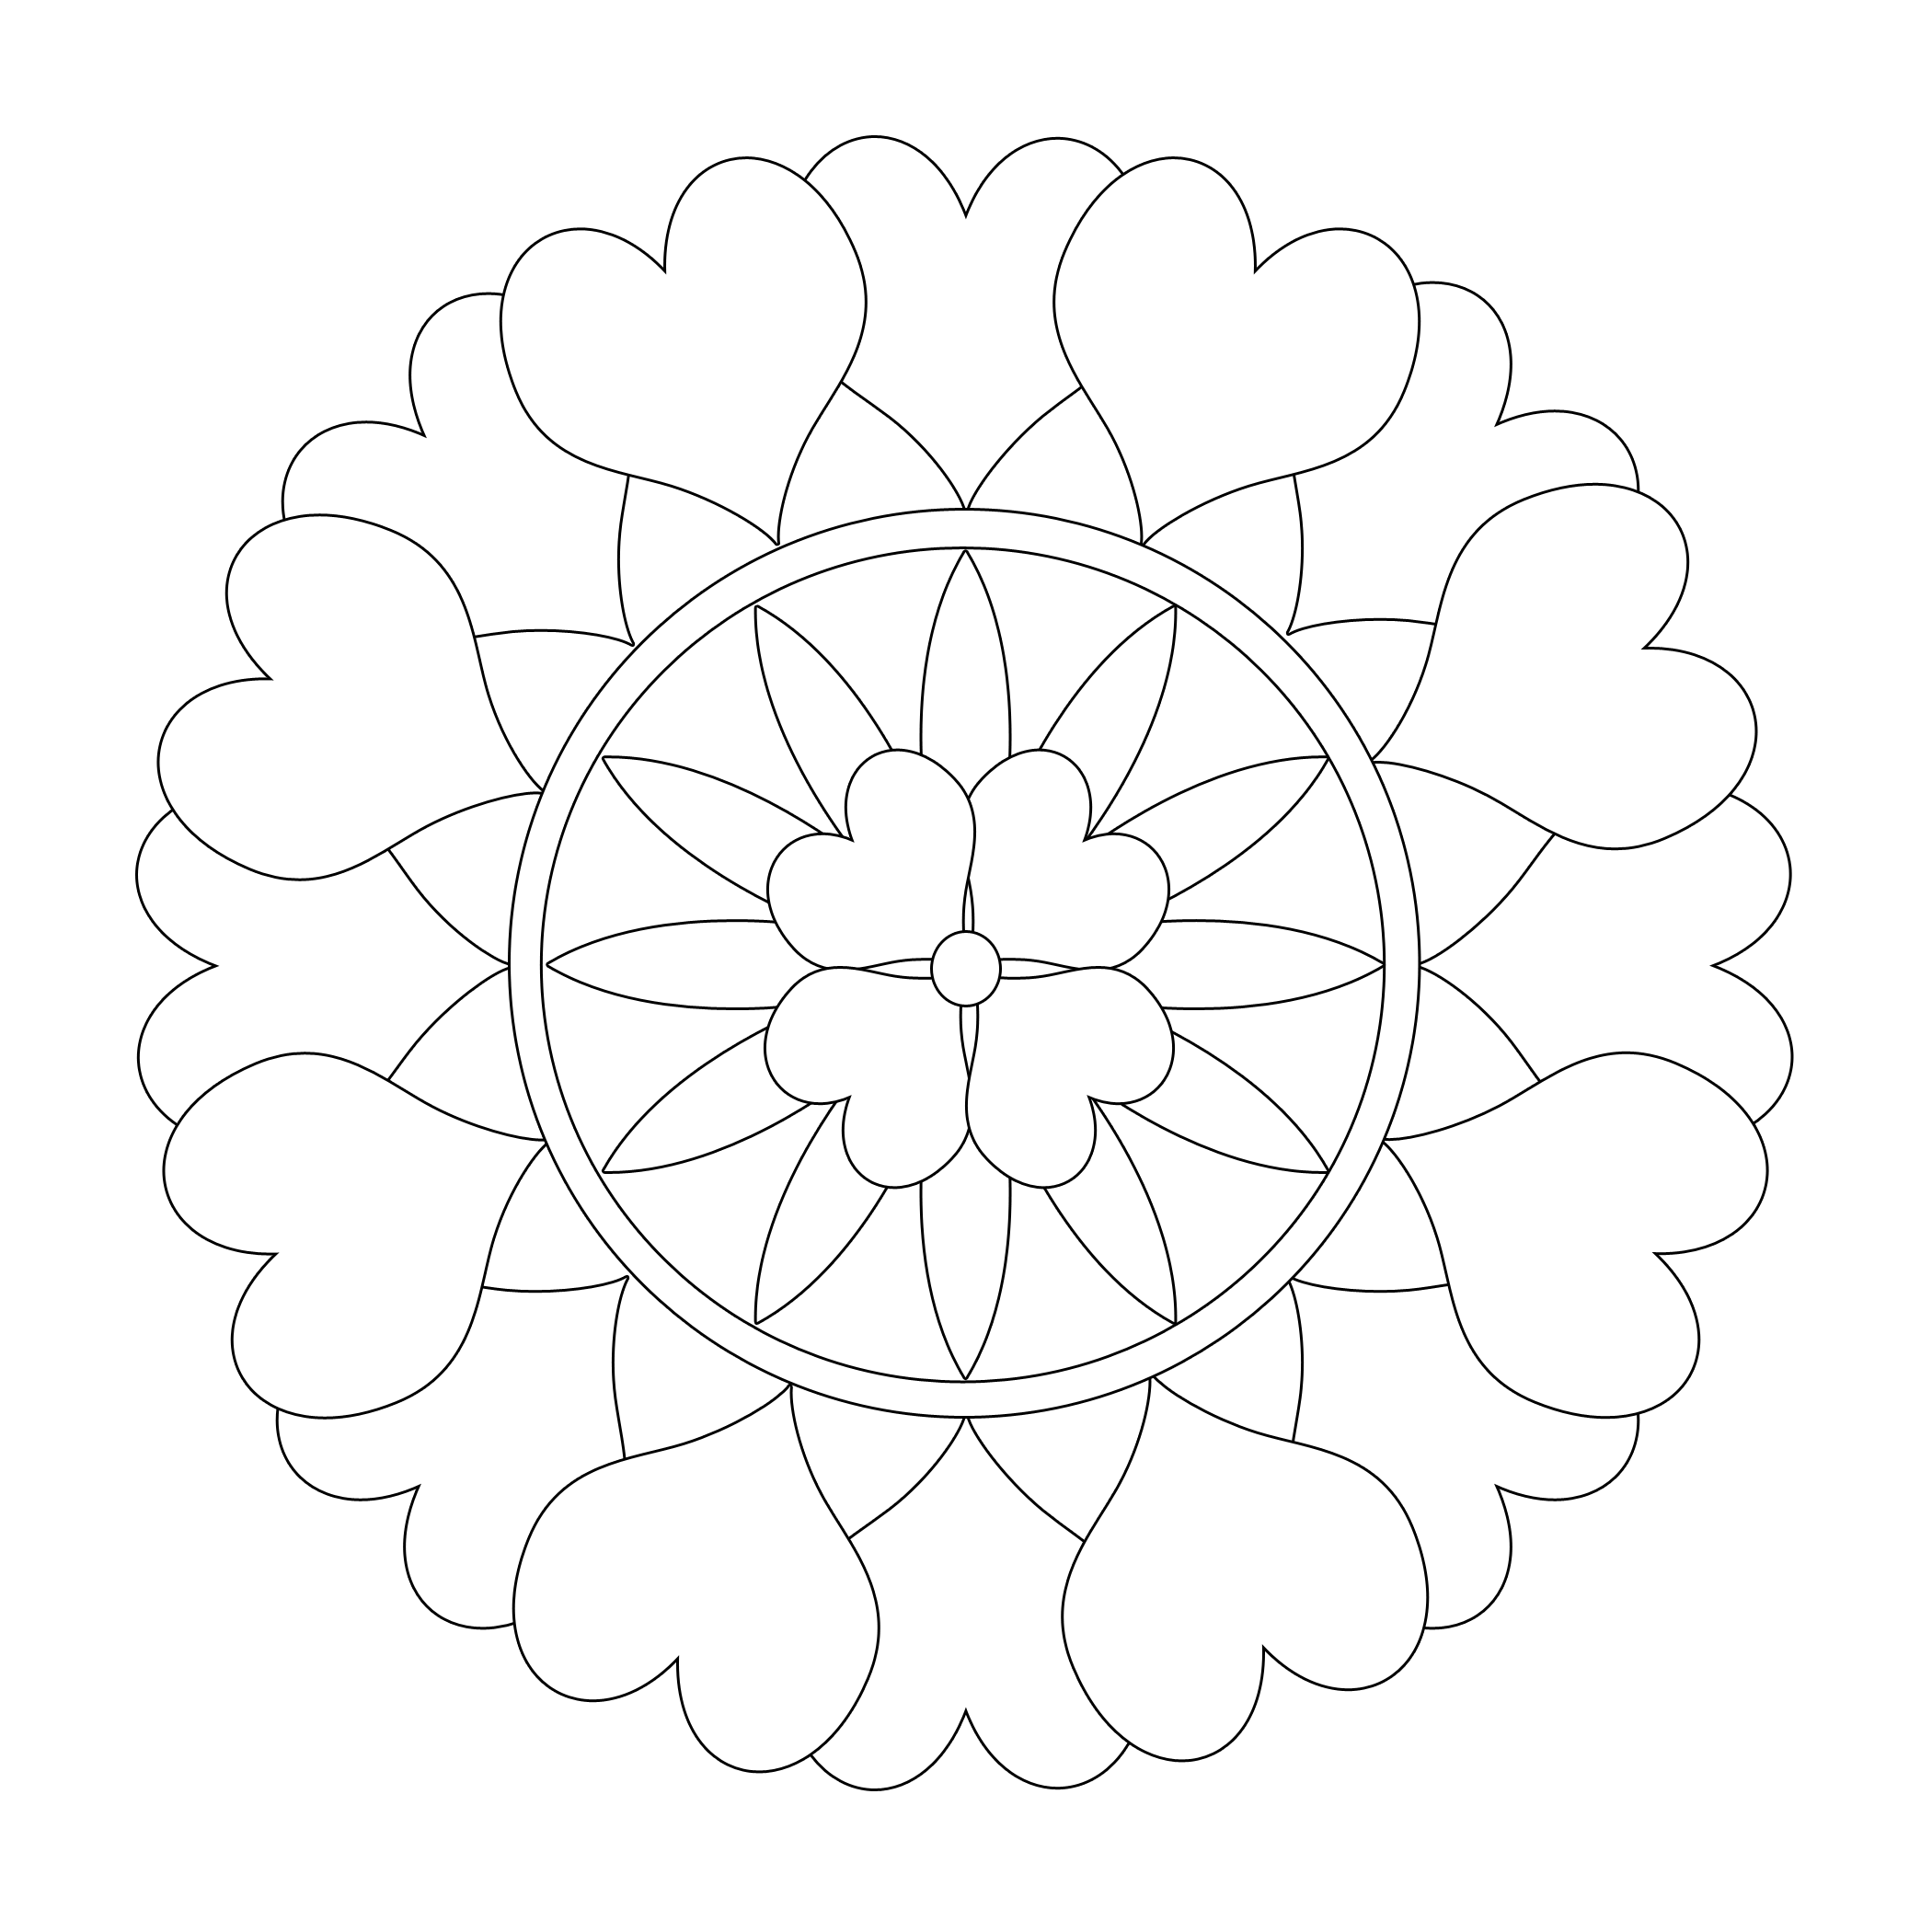 mandala coloring pages free printable adults image result for adult colouring mandala flower patterns printable pages mandala free coloring adults